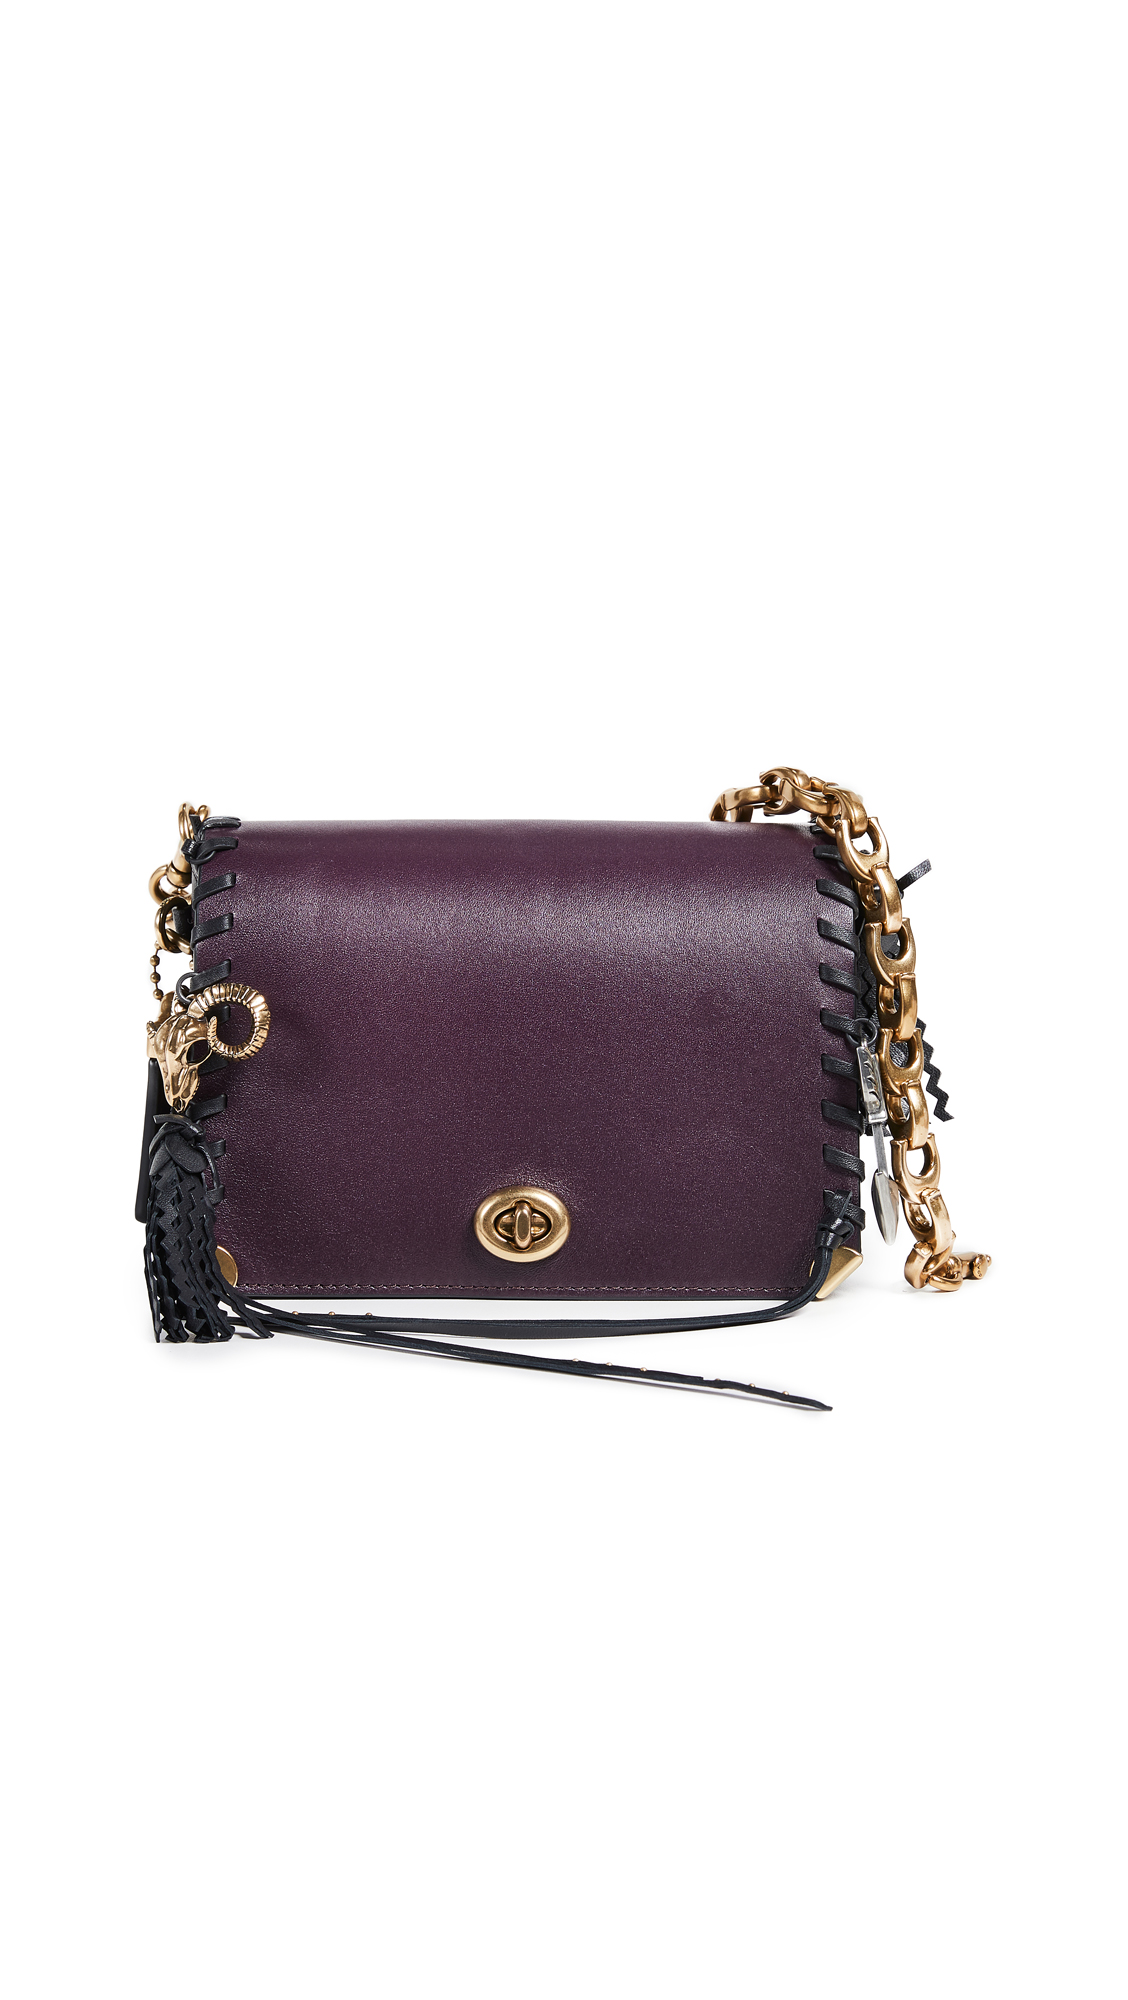 1941 Charms Dinky 19 Crossbody Bag, Plum Multi